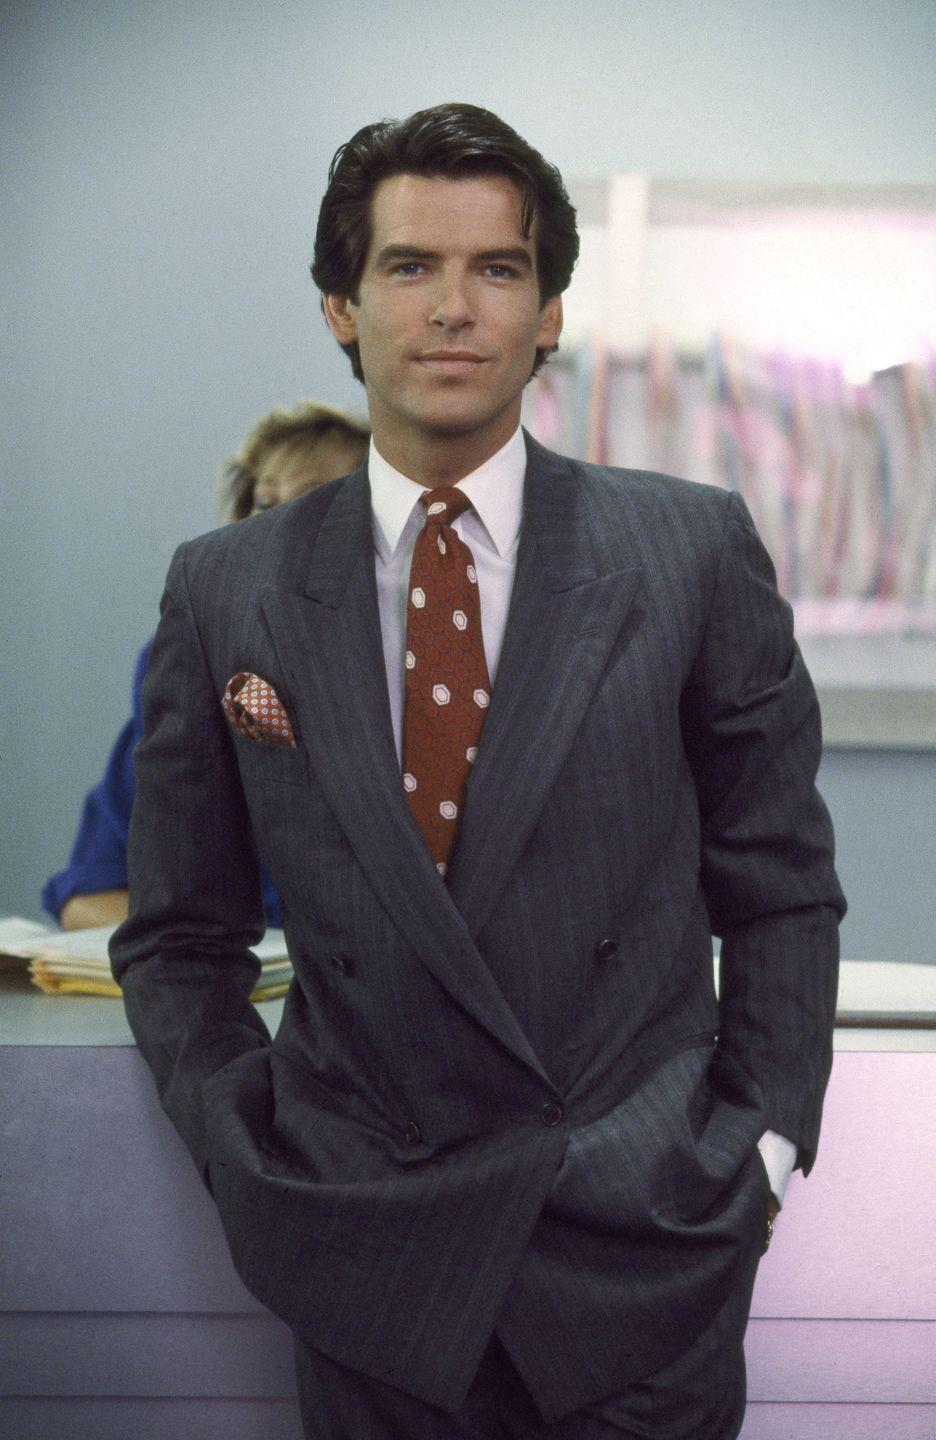 <p>From <em>Remington Steele</em> to <em>James Bond</em>, Pierce Brosnan's perfectly coiffed dark brown hair helped earned him a heartthrob status he's continued to hold for decades.</p>